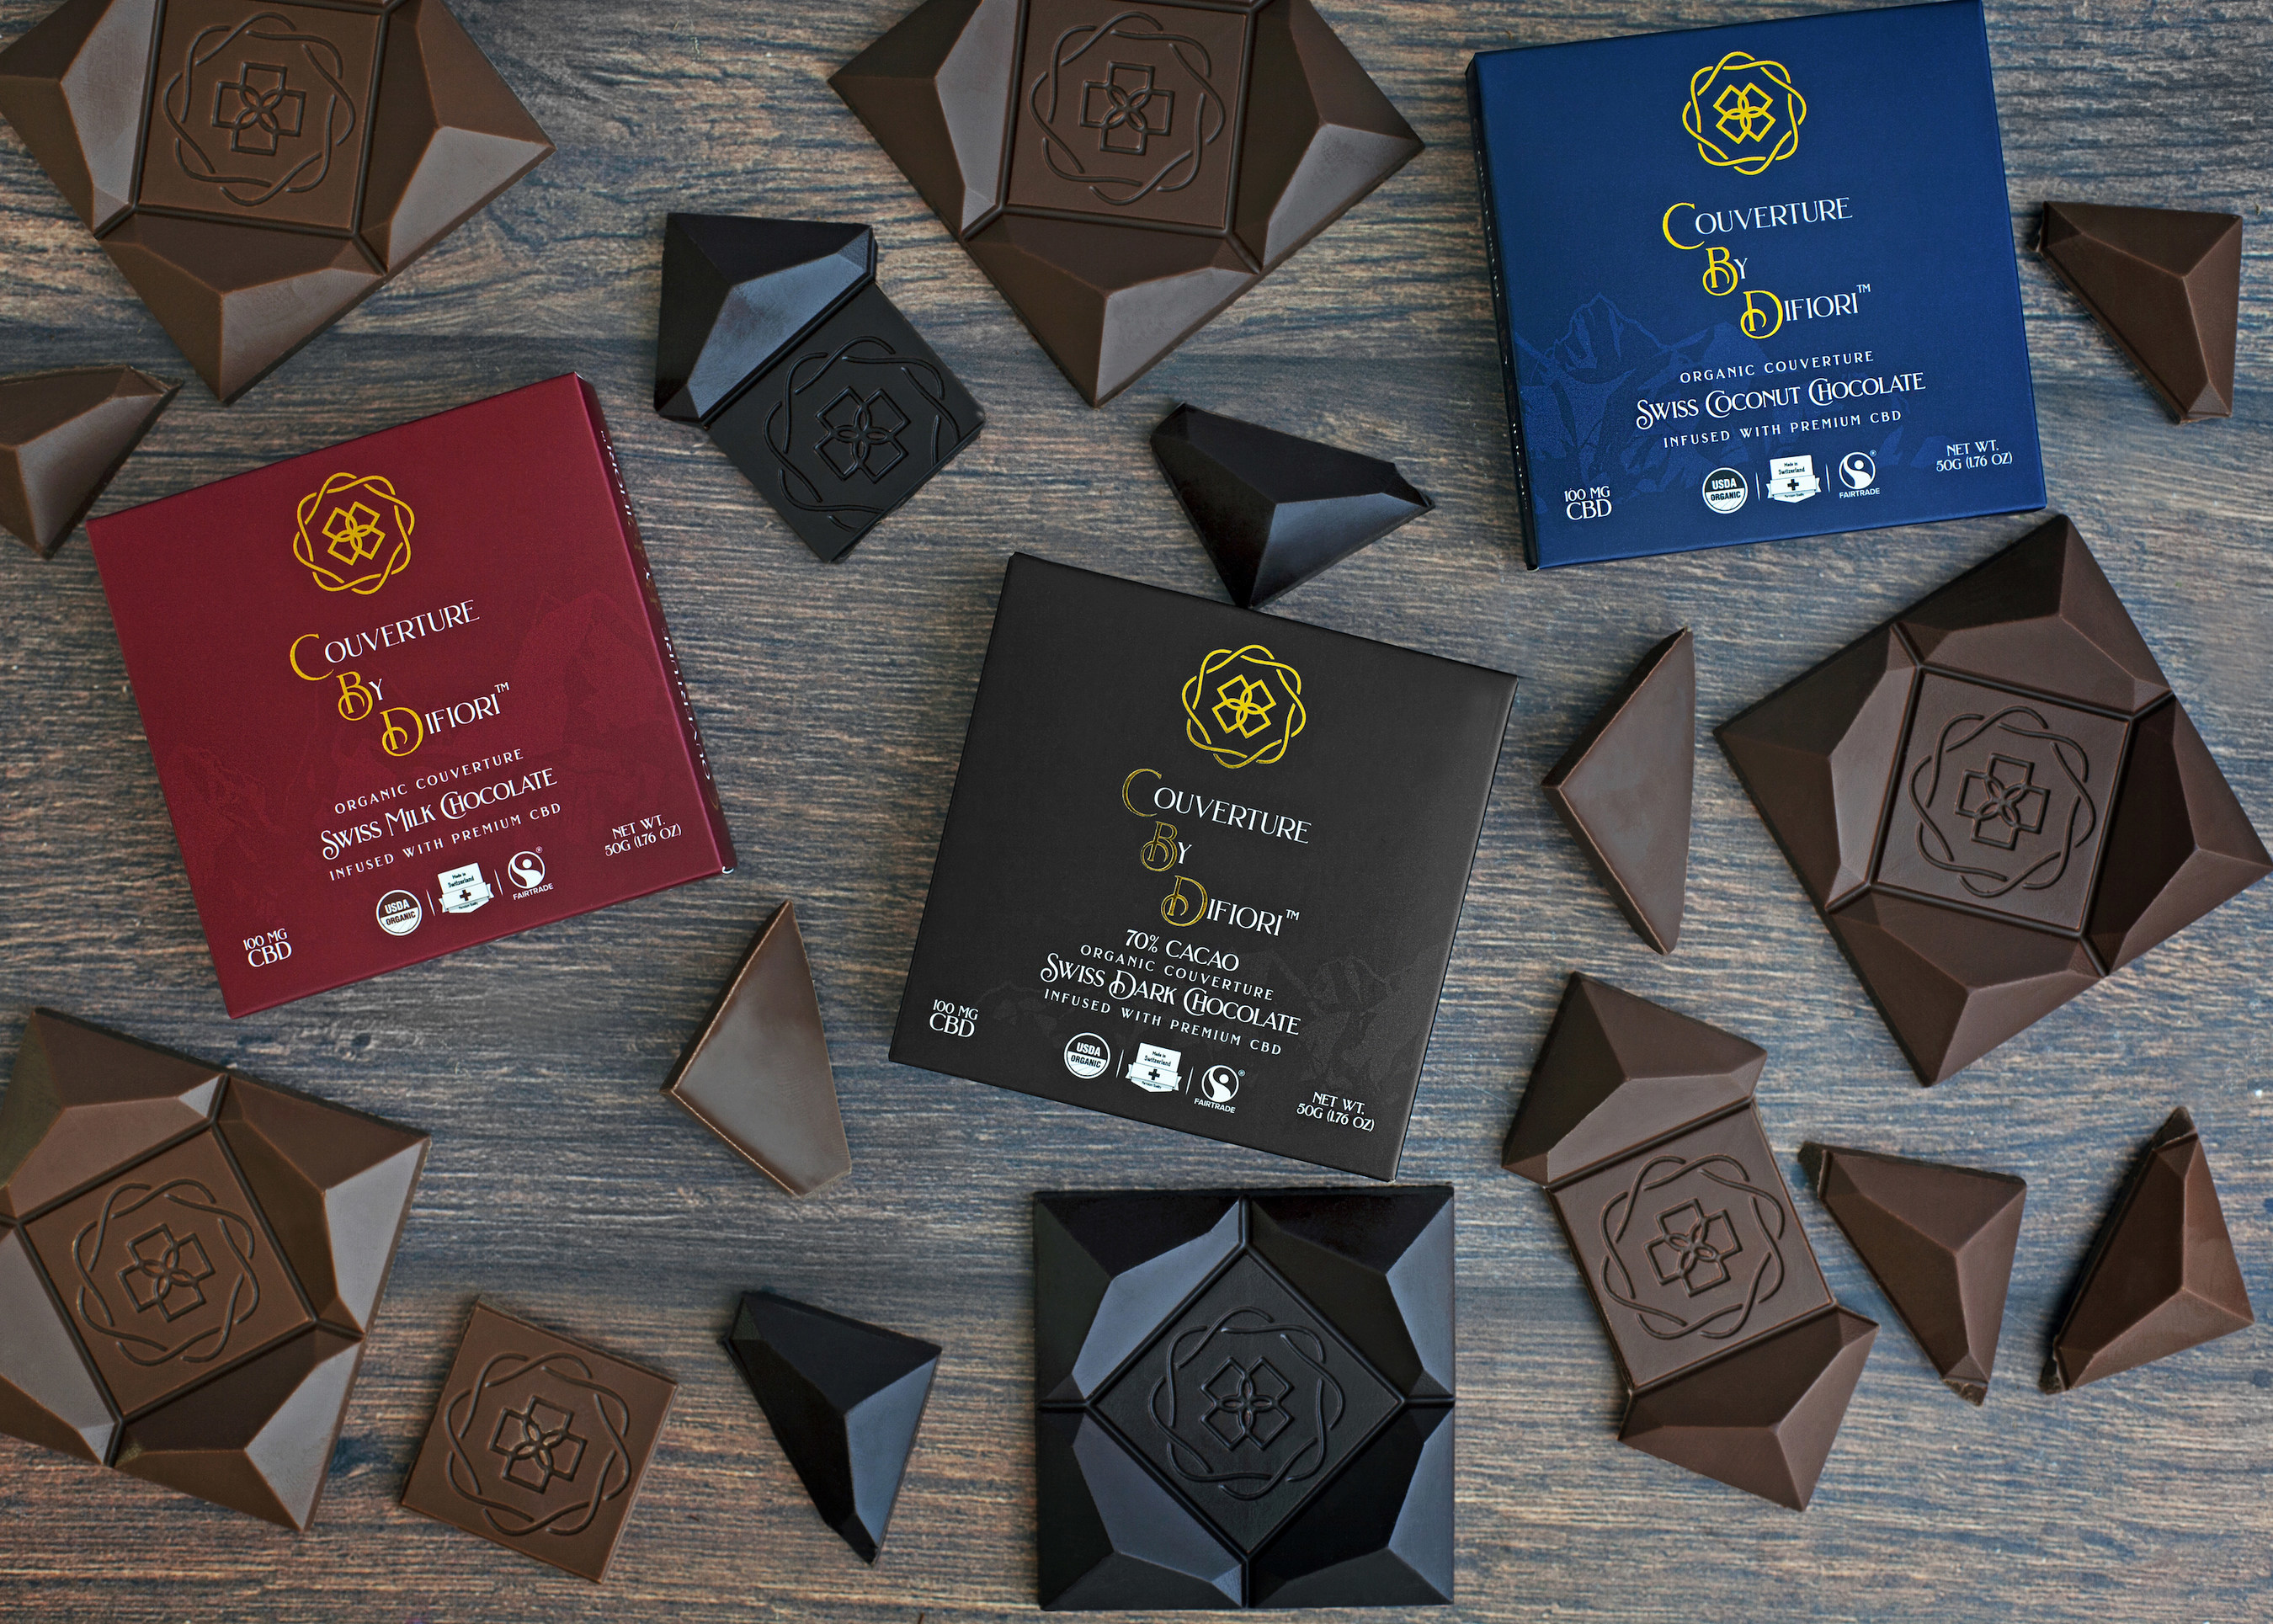 Difiori is First to Bring Fine Organic Swiss Chocolate